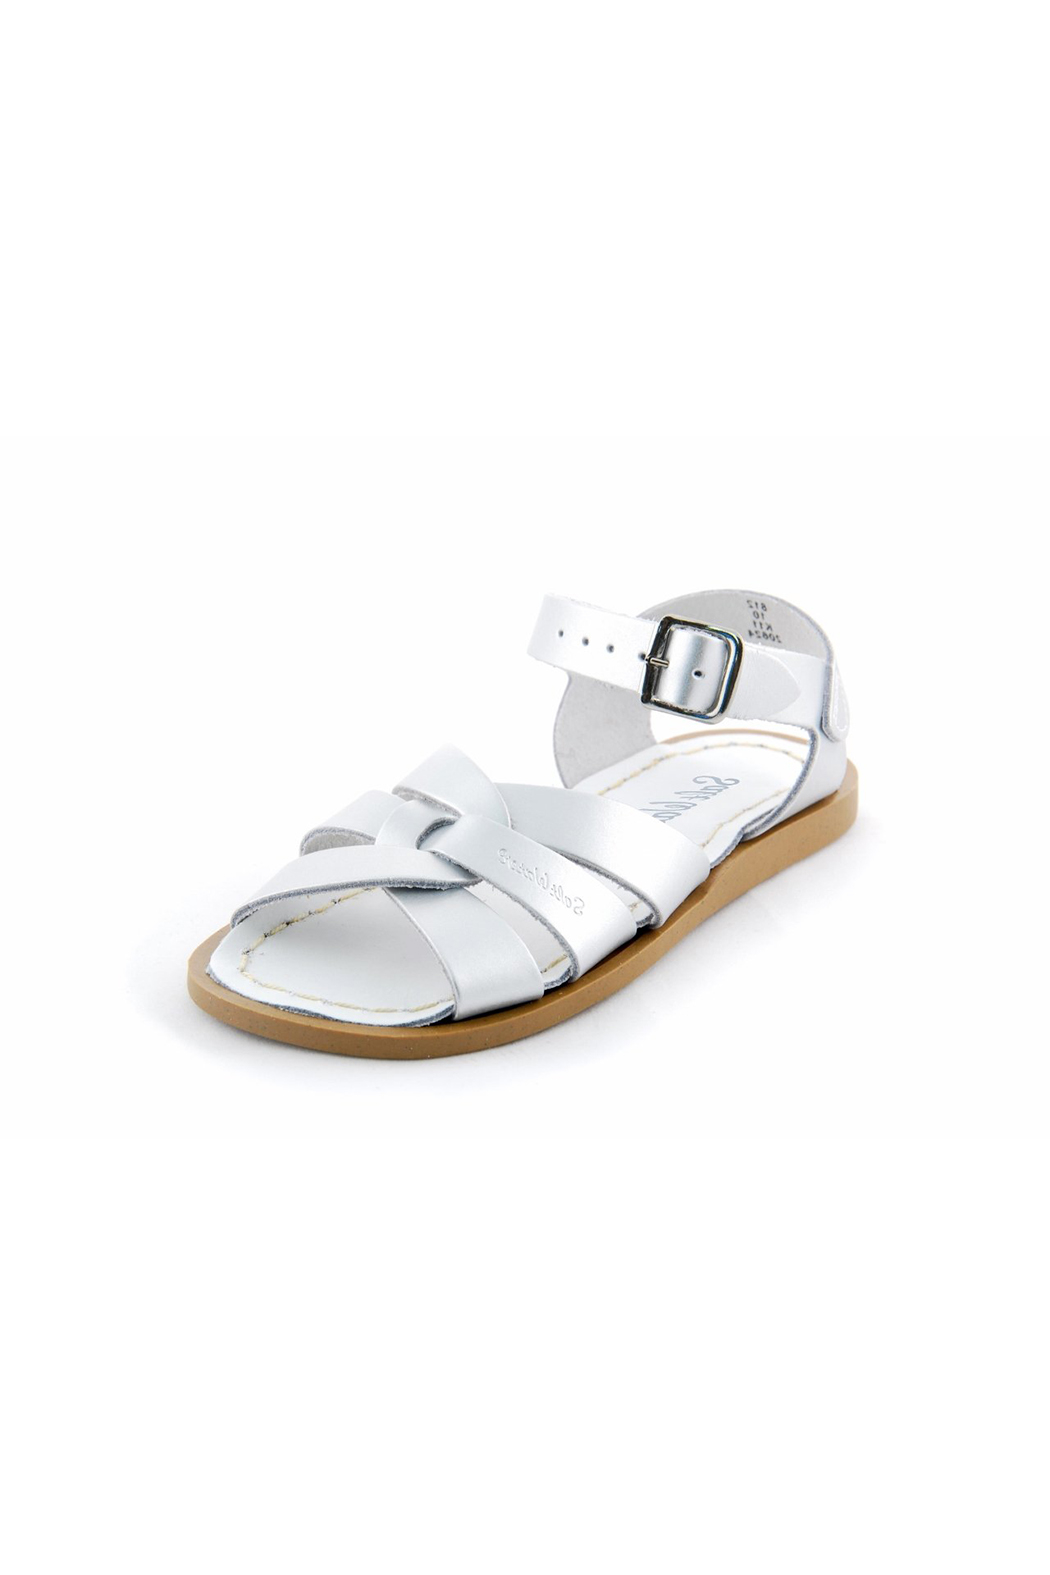 5a361db55b1 Hoy Shoes Original Saltwater Sandals Silver Youth Adult - Front Cropped  Image